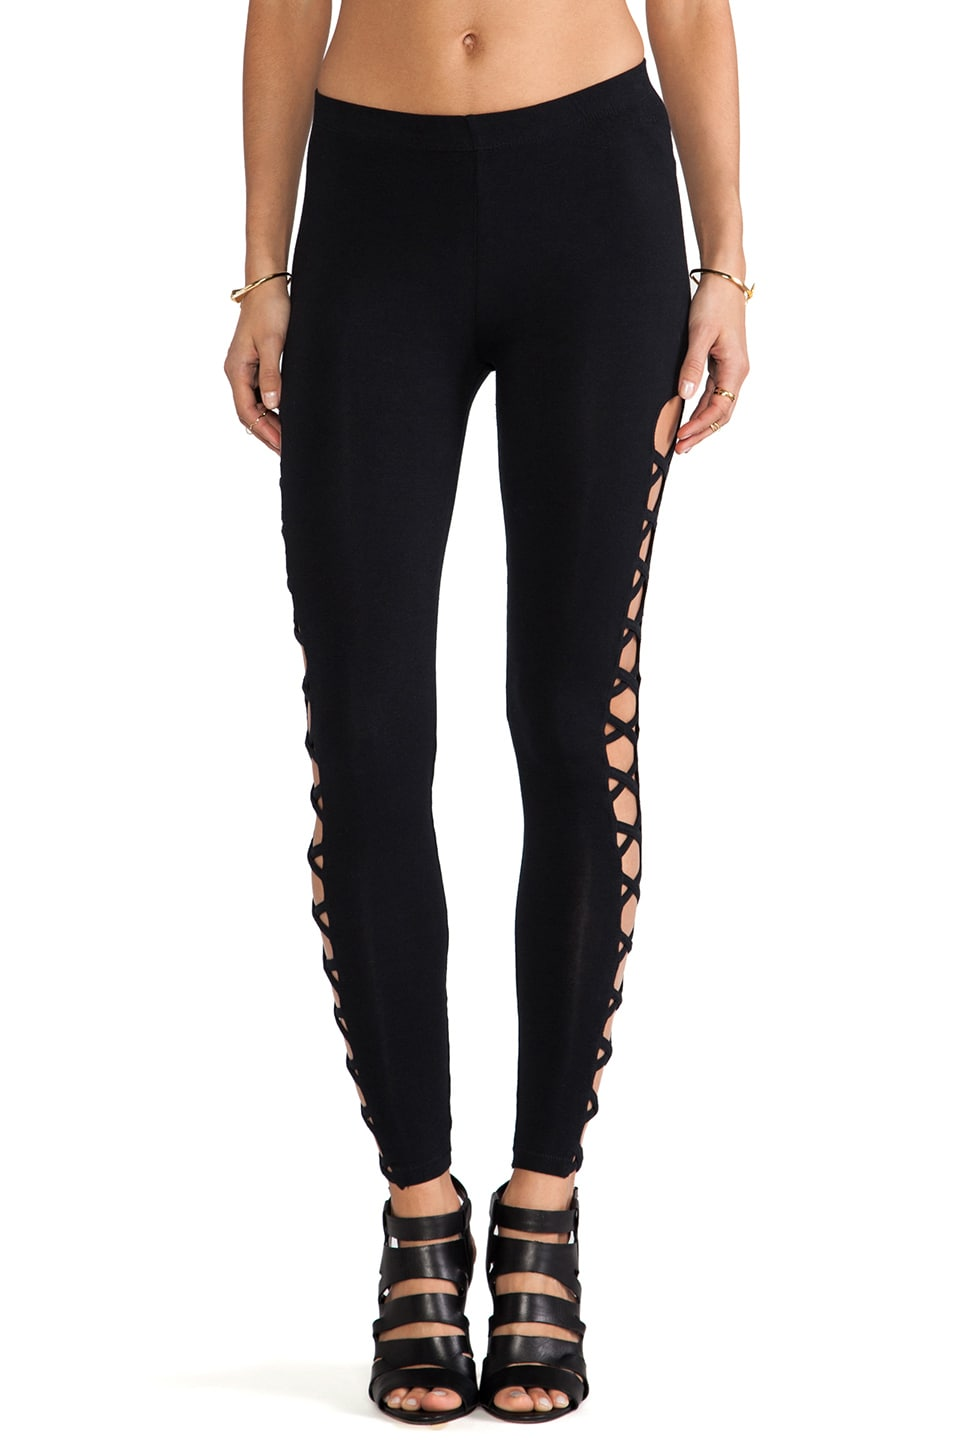 Obey Wild Child Legging in Black